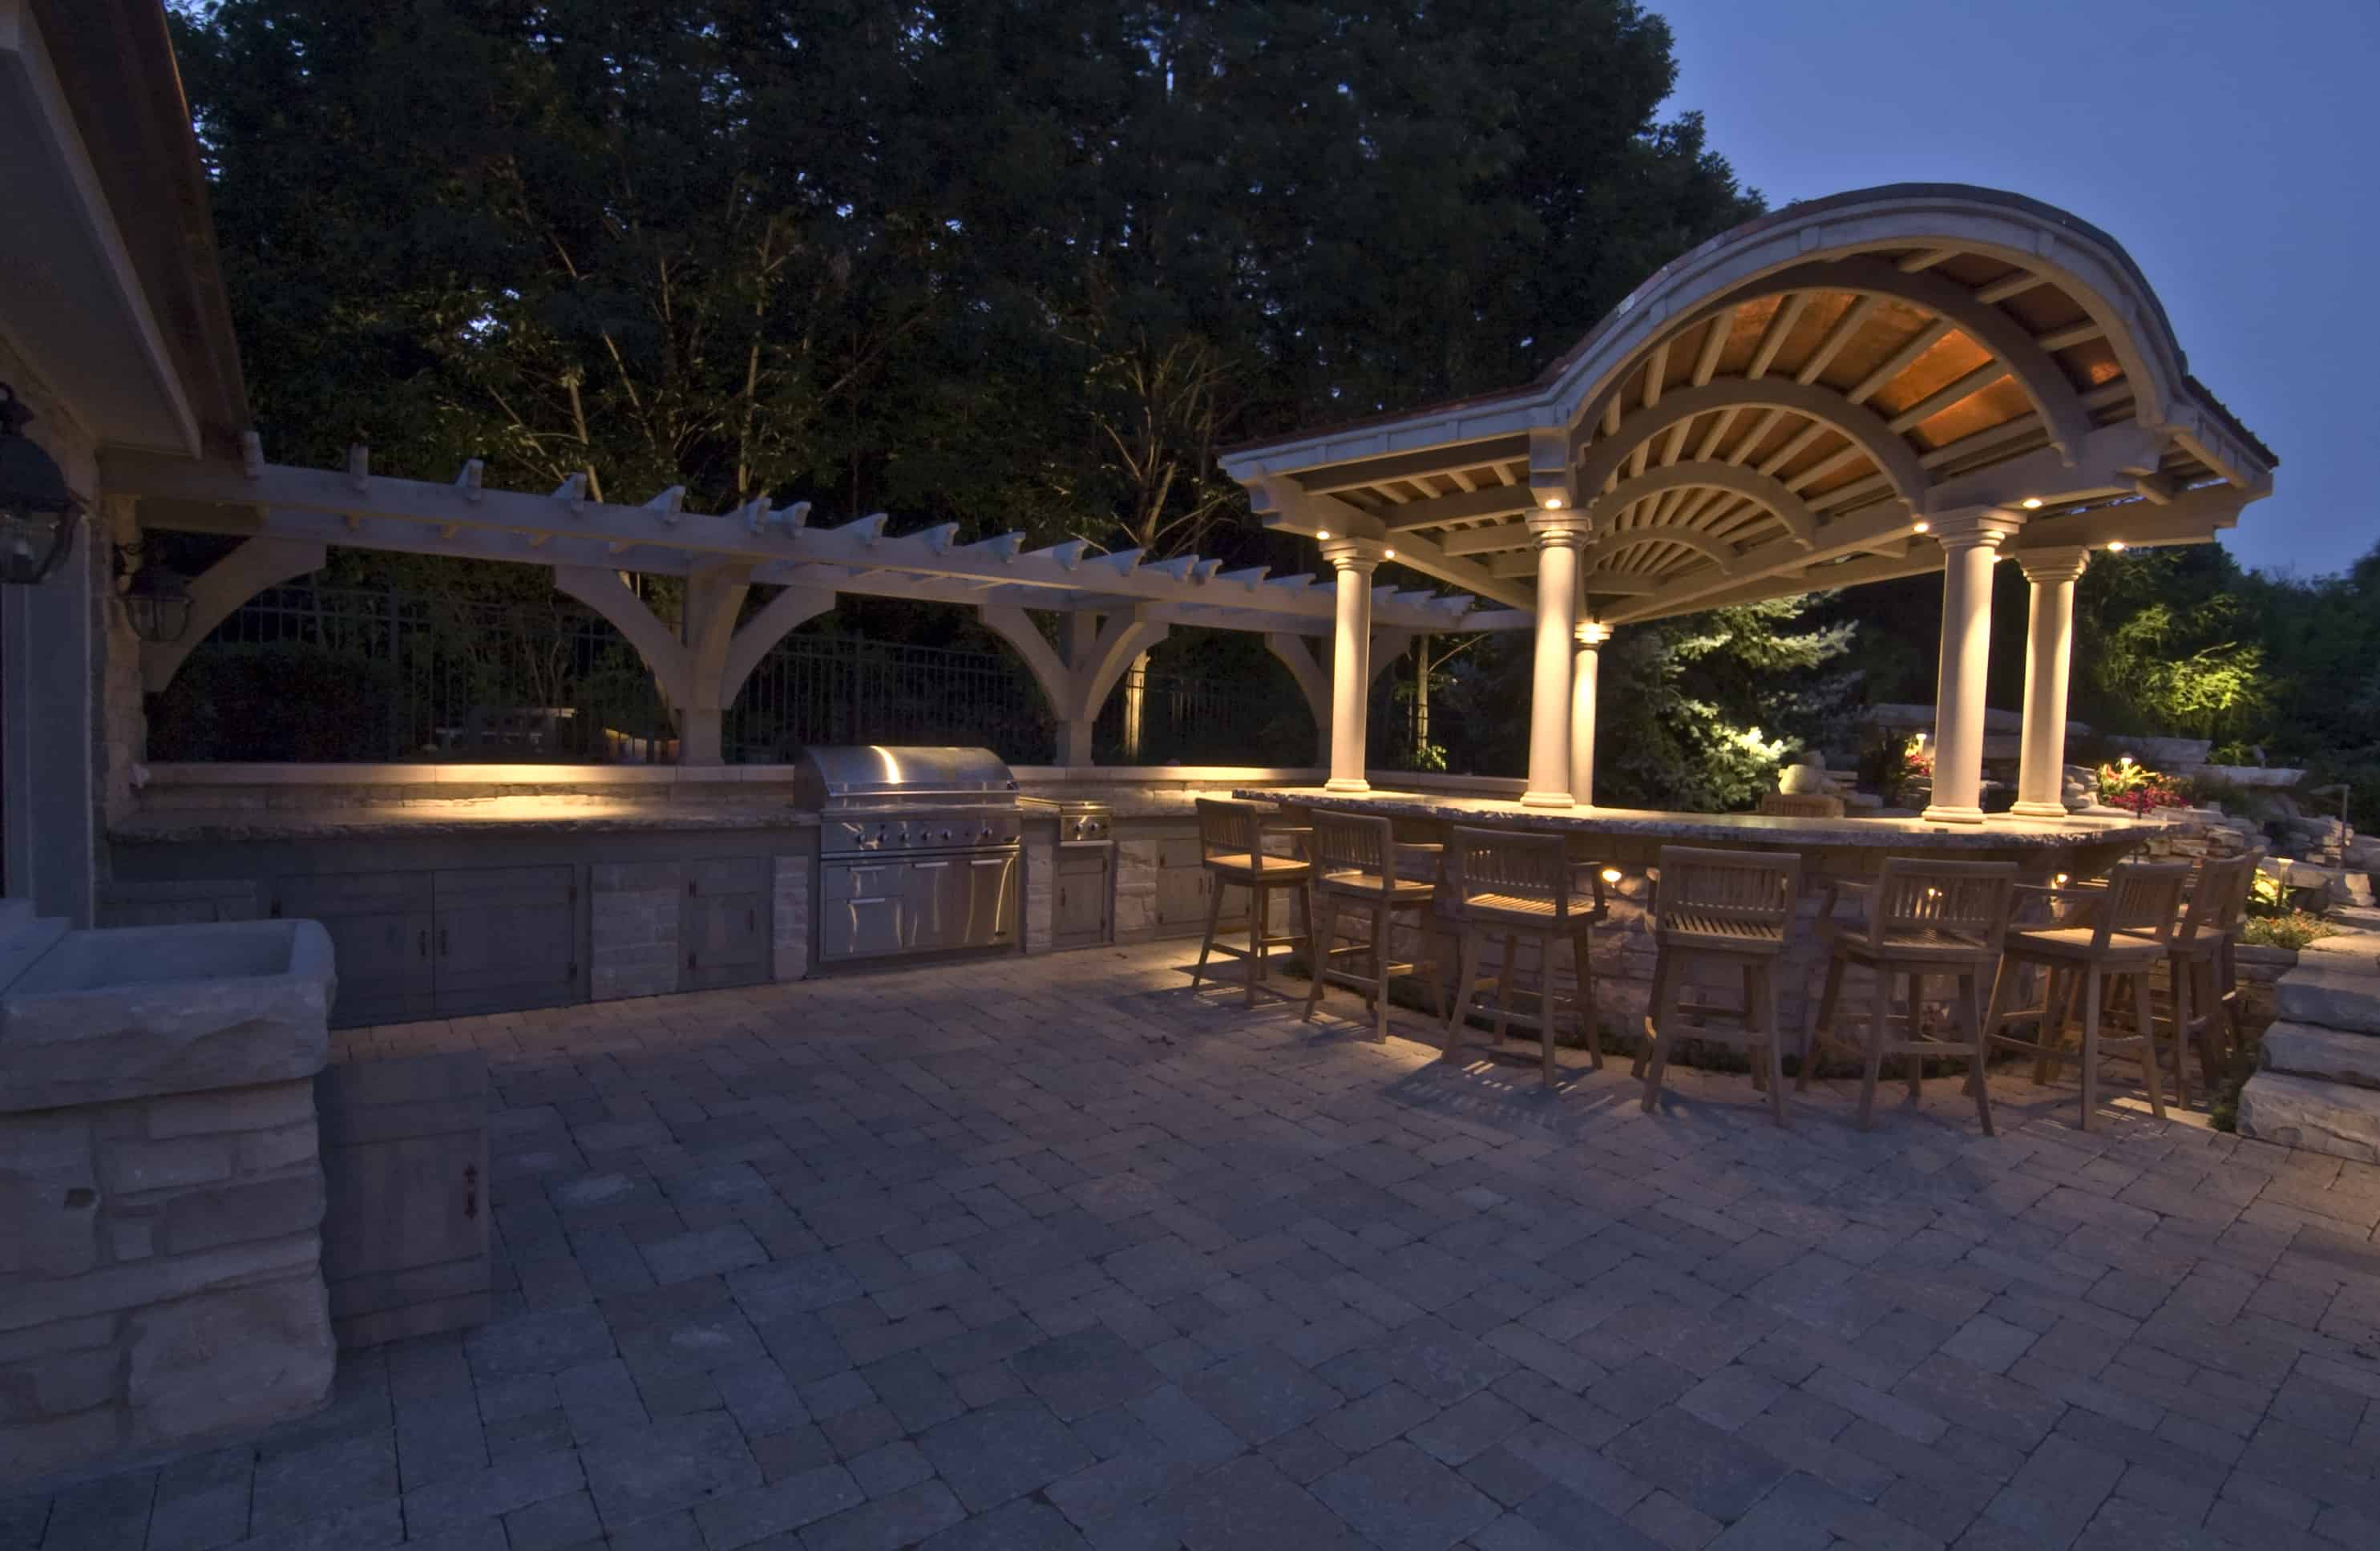 Kitchen Bars And Grills Outdoor Lighting In Chicago Il Outdoor Accents